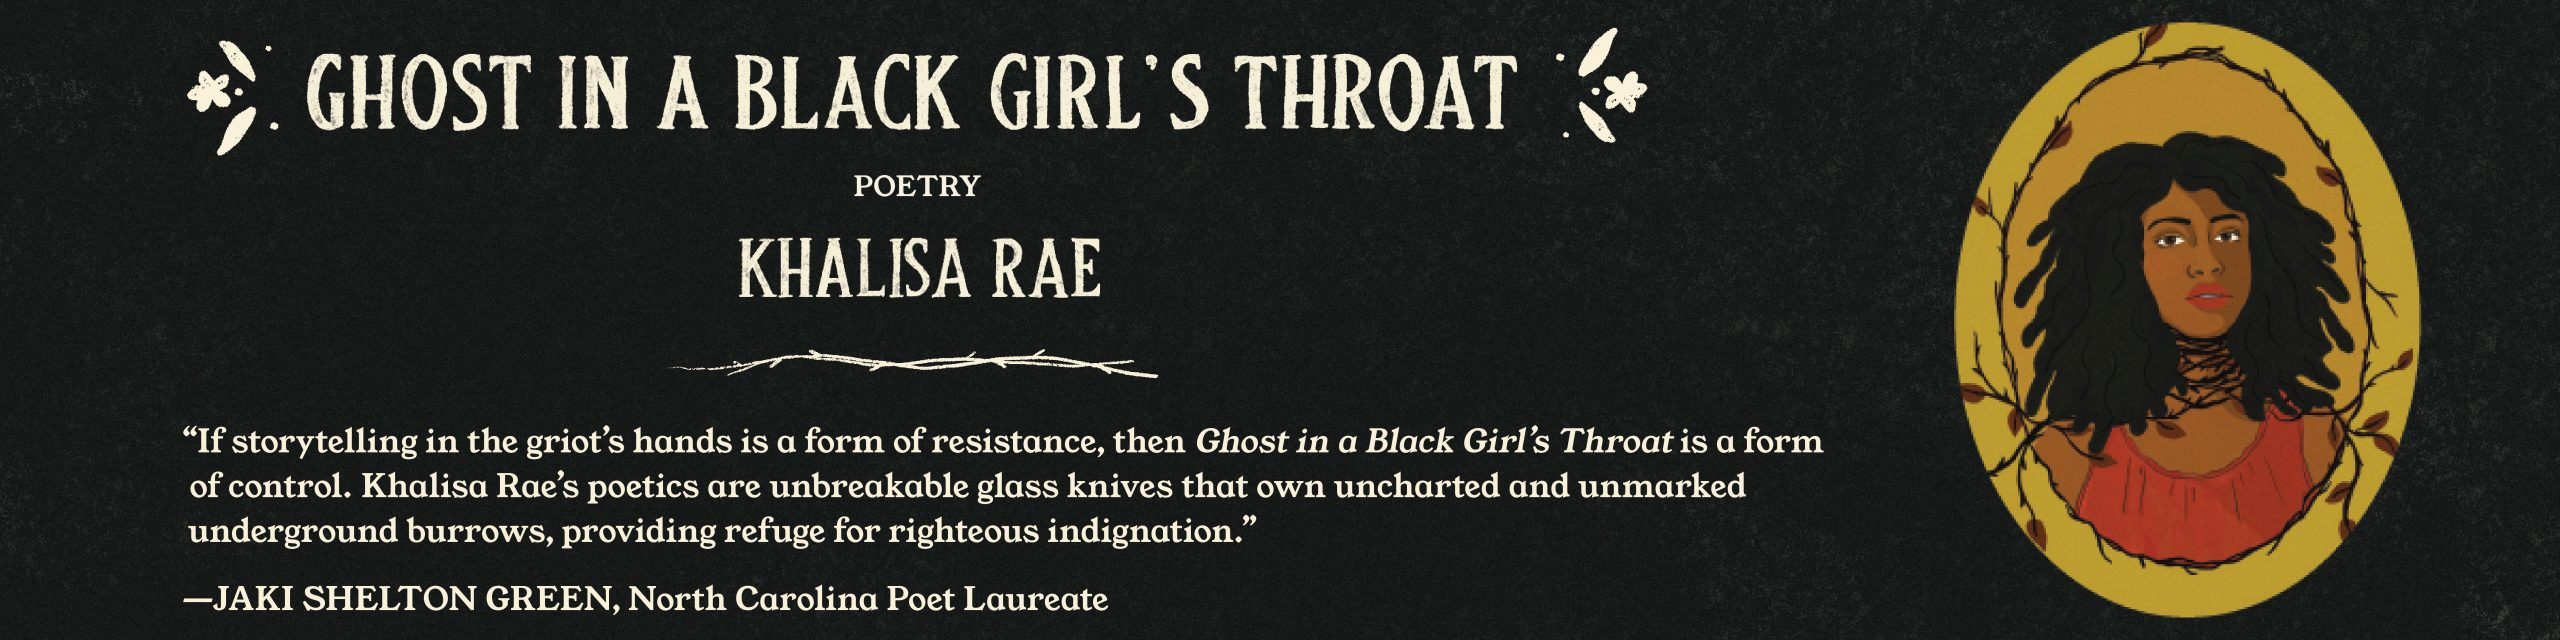 Ghost in a Black Girl's Throat banner